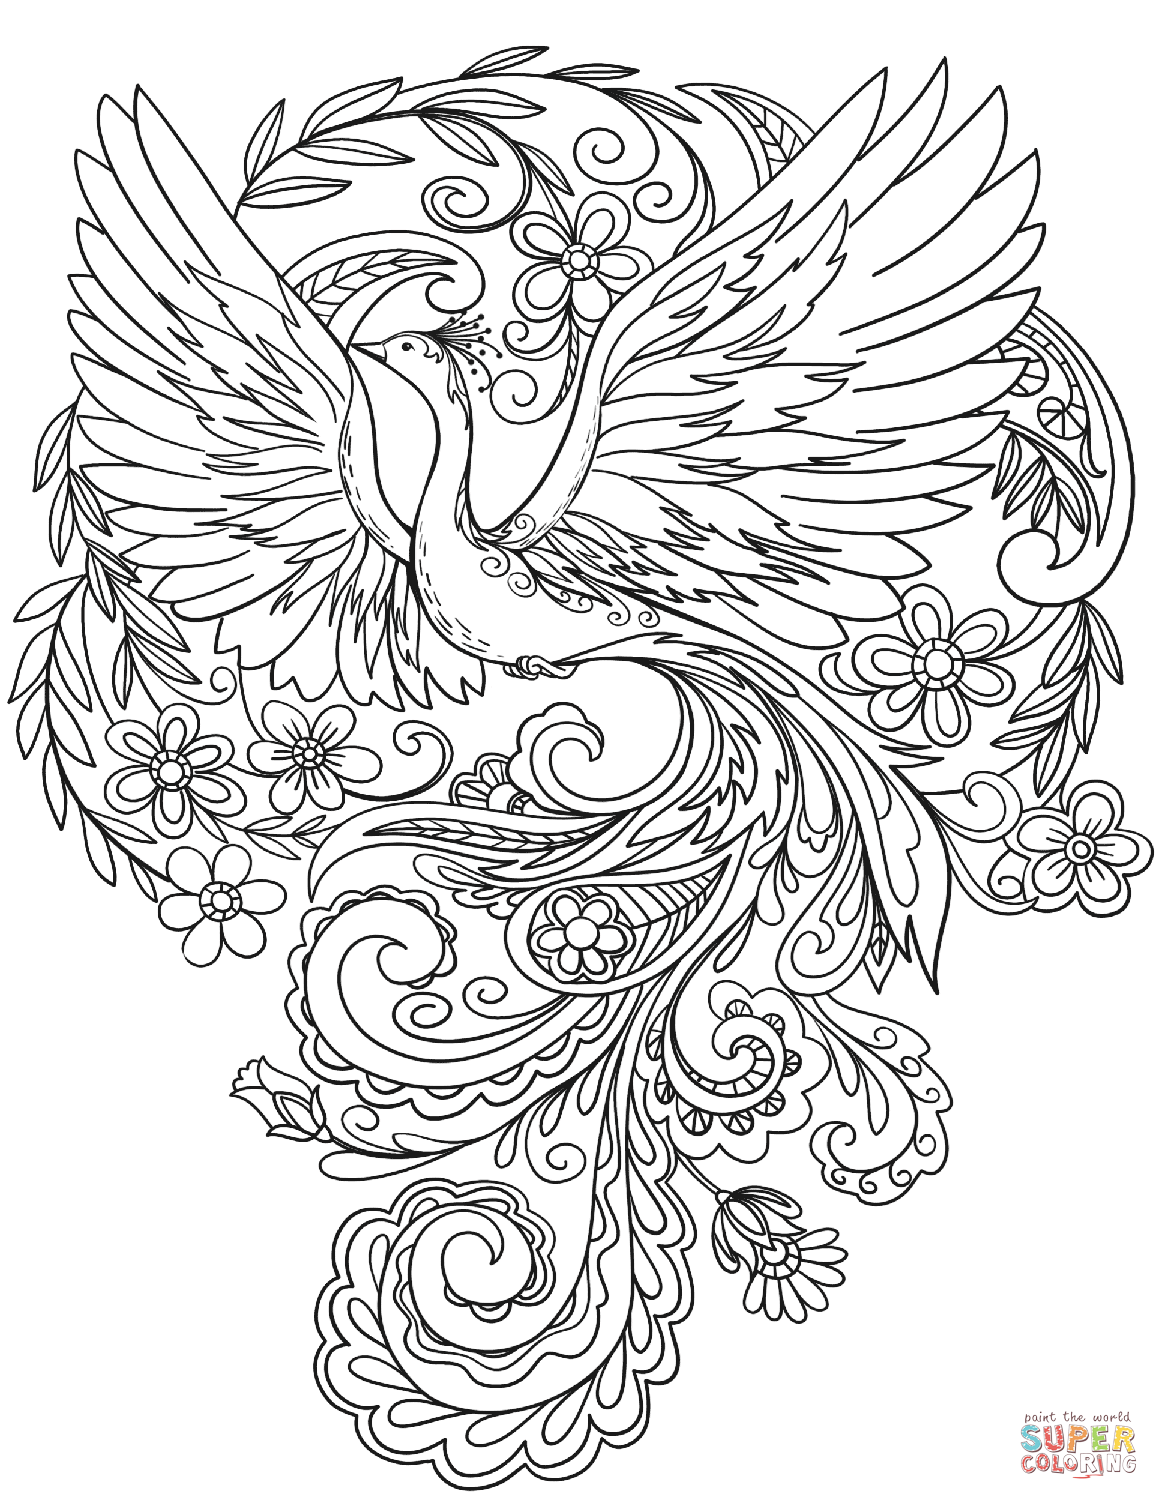 picture of peacock to color free printables peacock coloring page to picture of color peacock